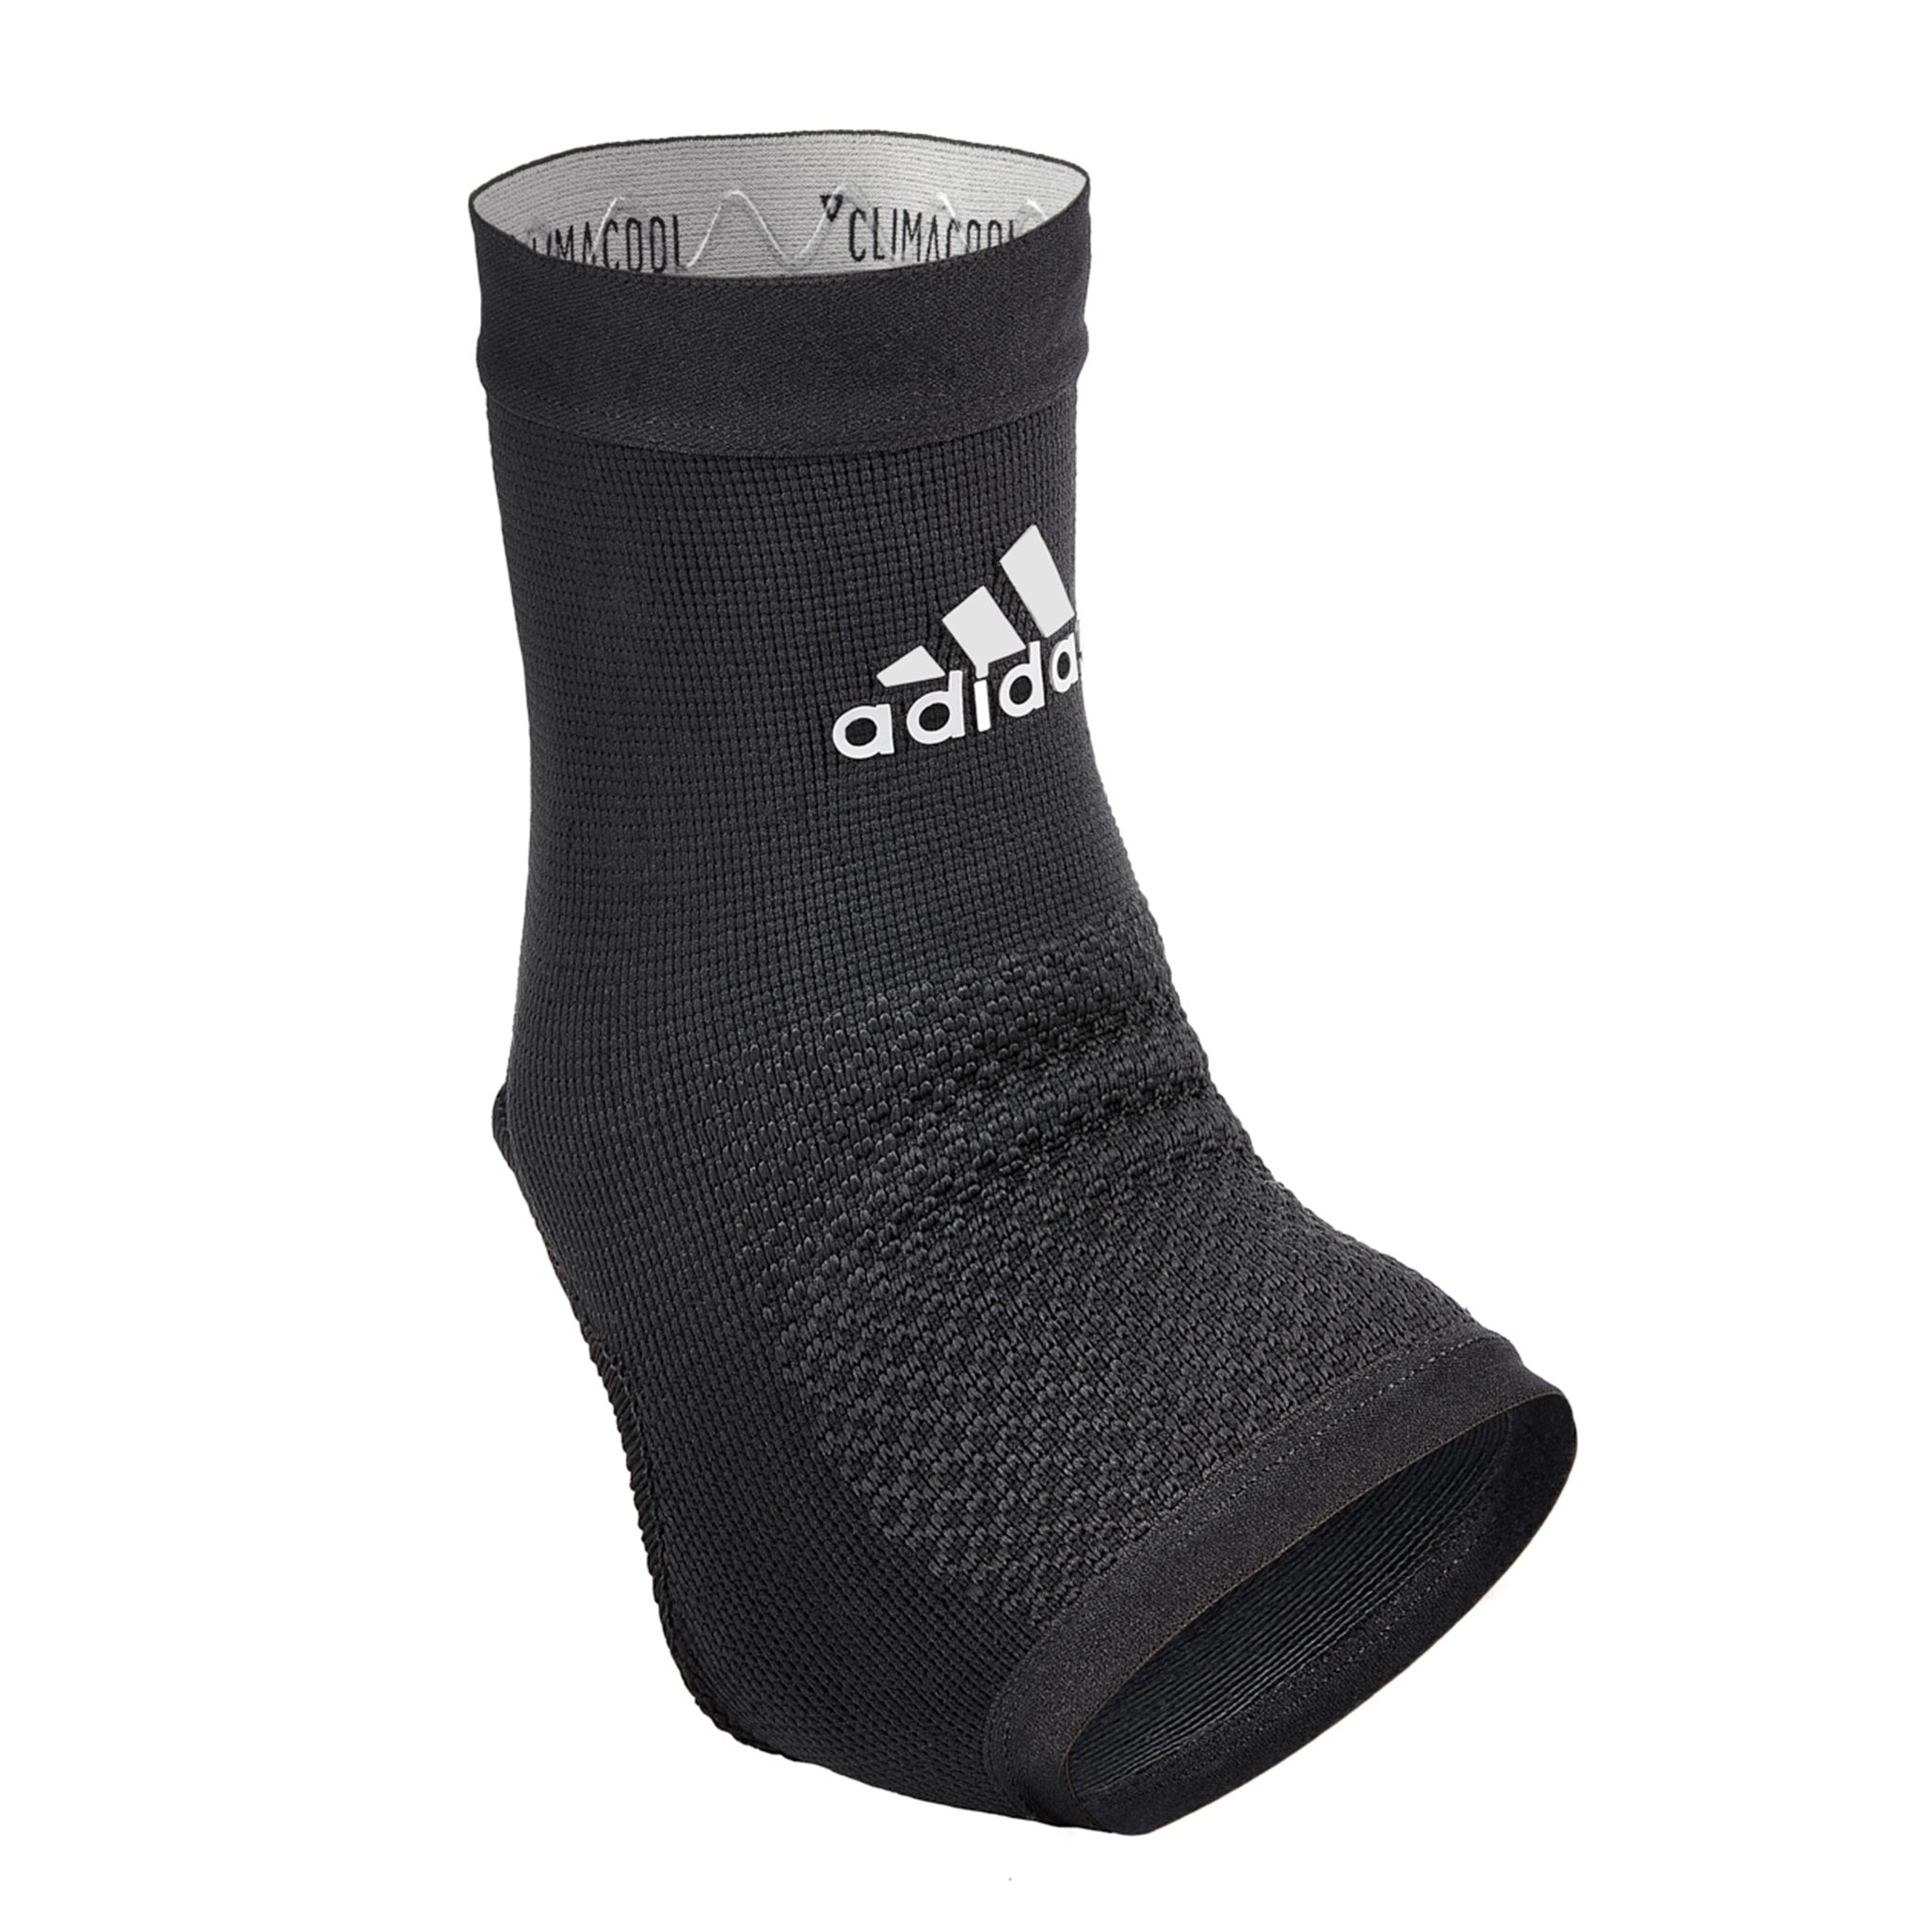 'Adidas Performance Climacool Ankle Compression Sleeve Support with Moisture Wicking Technology, Black, Size Medium'